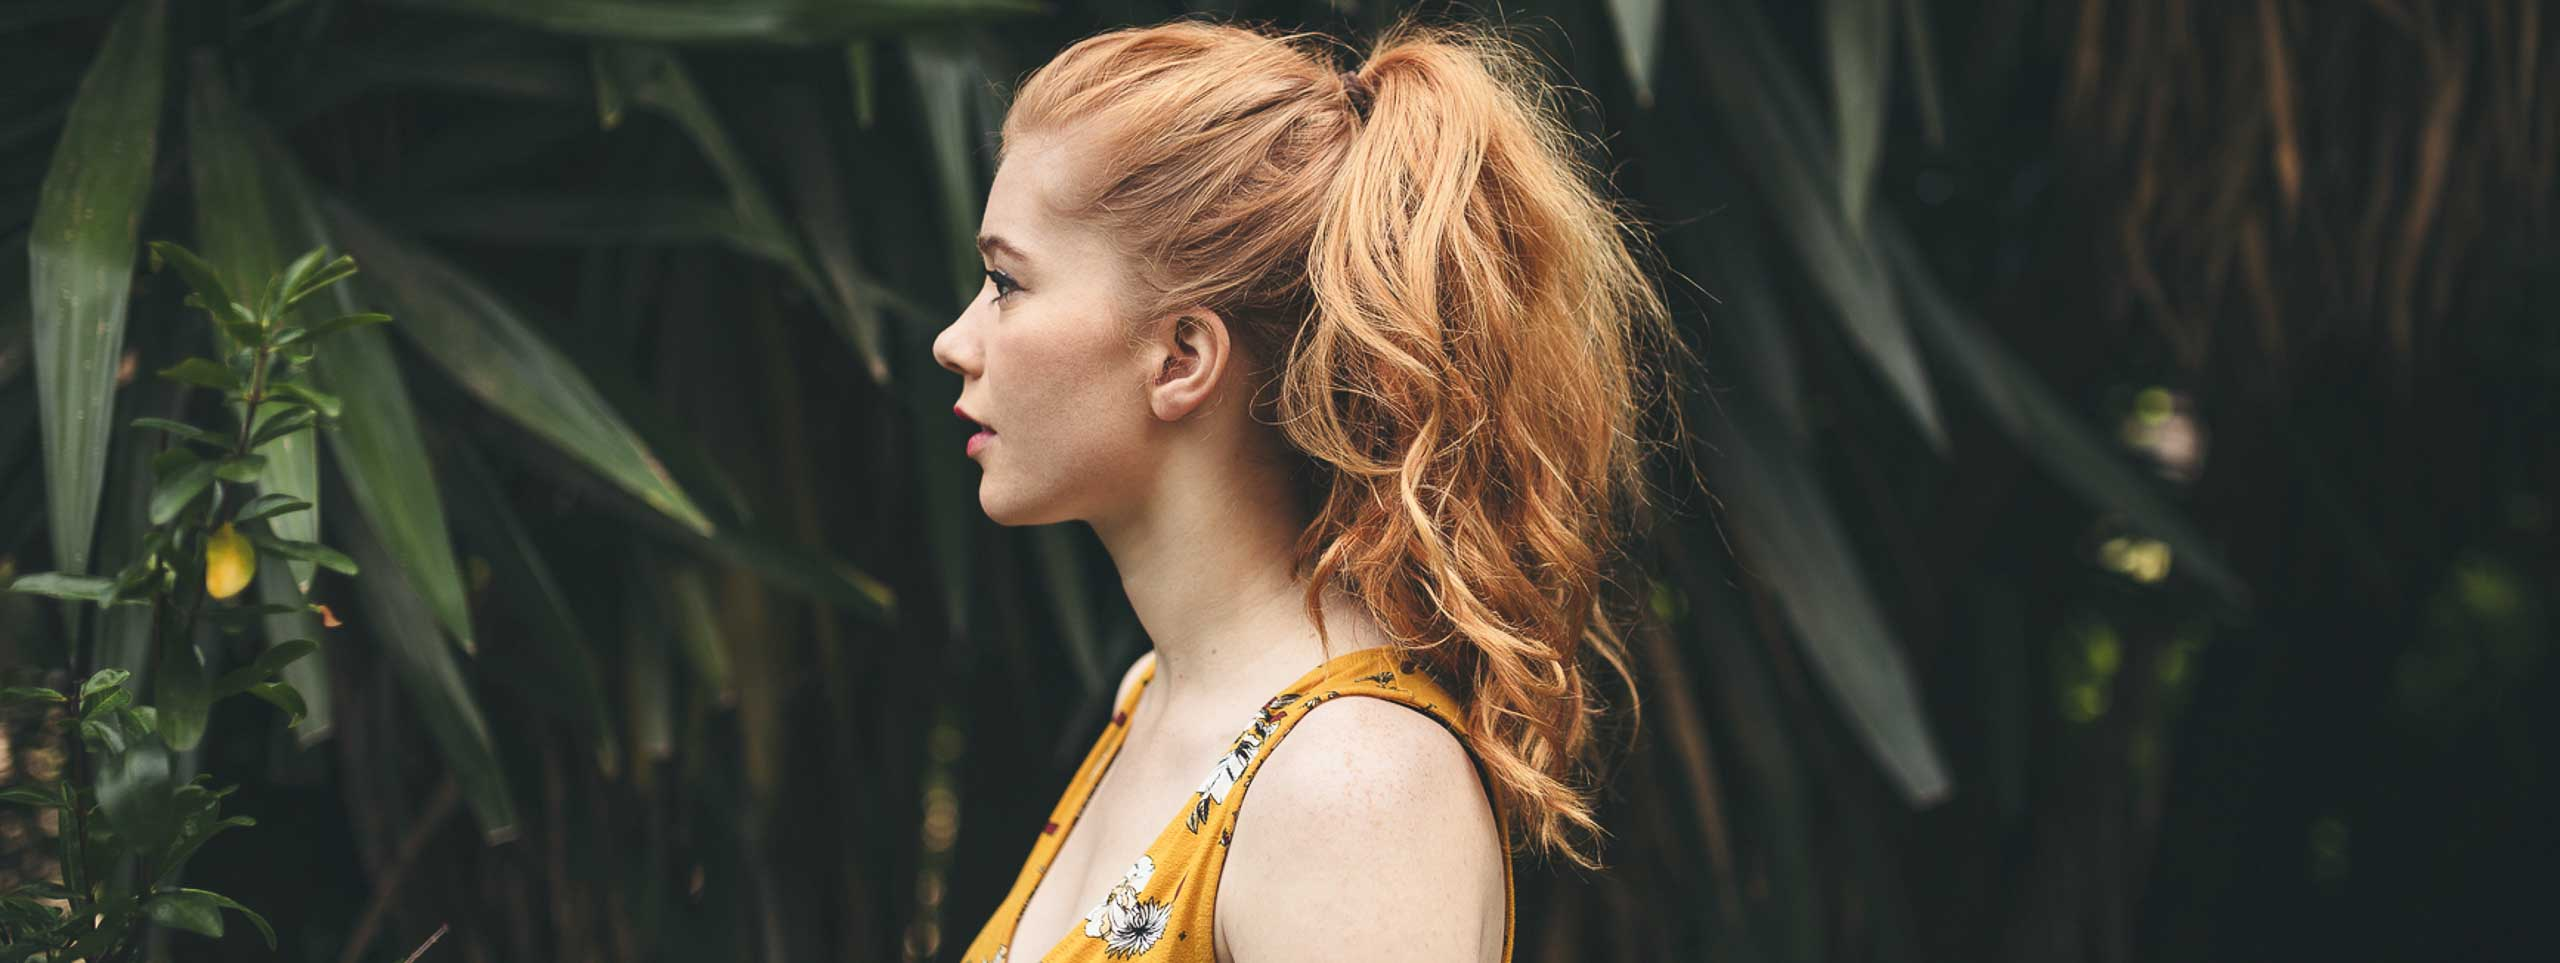 Young Redhead Woman With A Ponytail